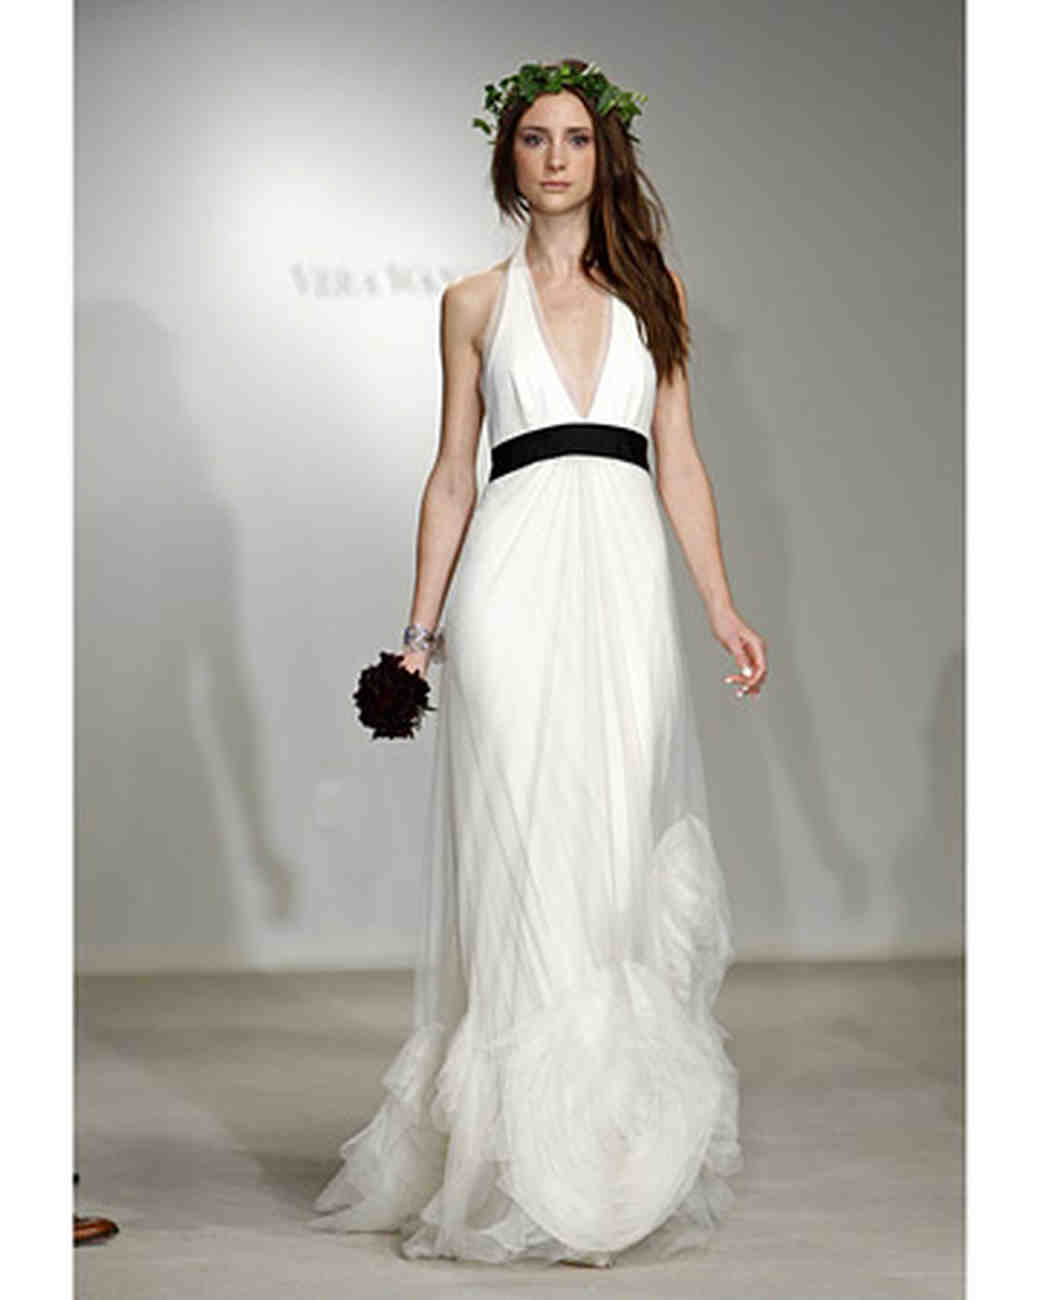 Vera wang spring 2009 bridal collection martha stewart weddings vera wang junglespirit Images